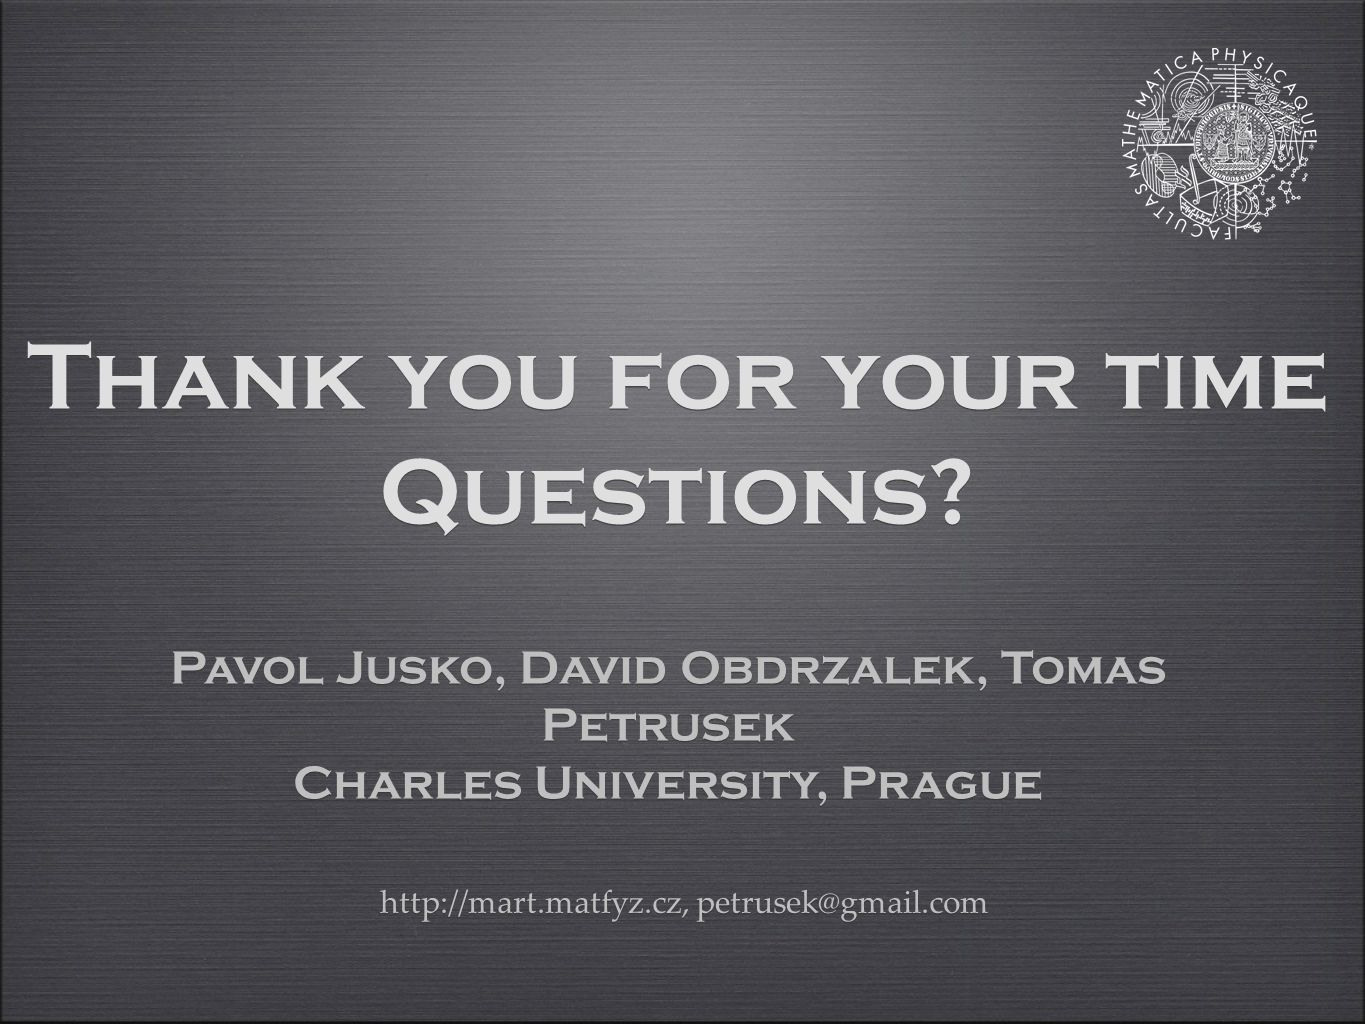 Thank you for your time Questions? Pavol Jusko, David Obdrzalek, Tomas Petrusek Charles University, Prague Pavol Jusko, David Obdrzalek, Tomas Petruse